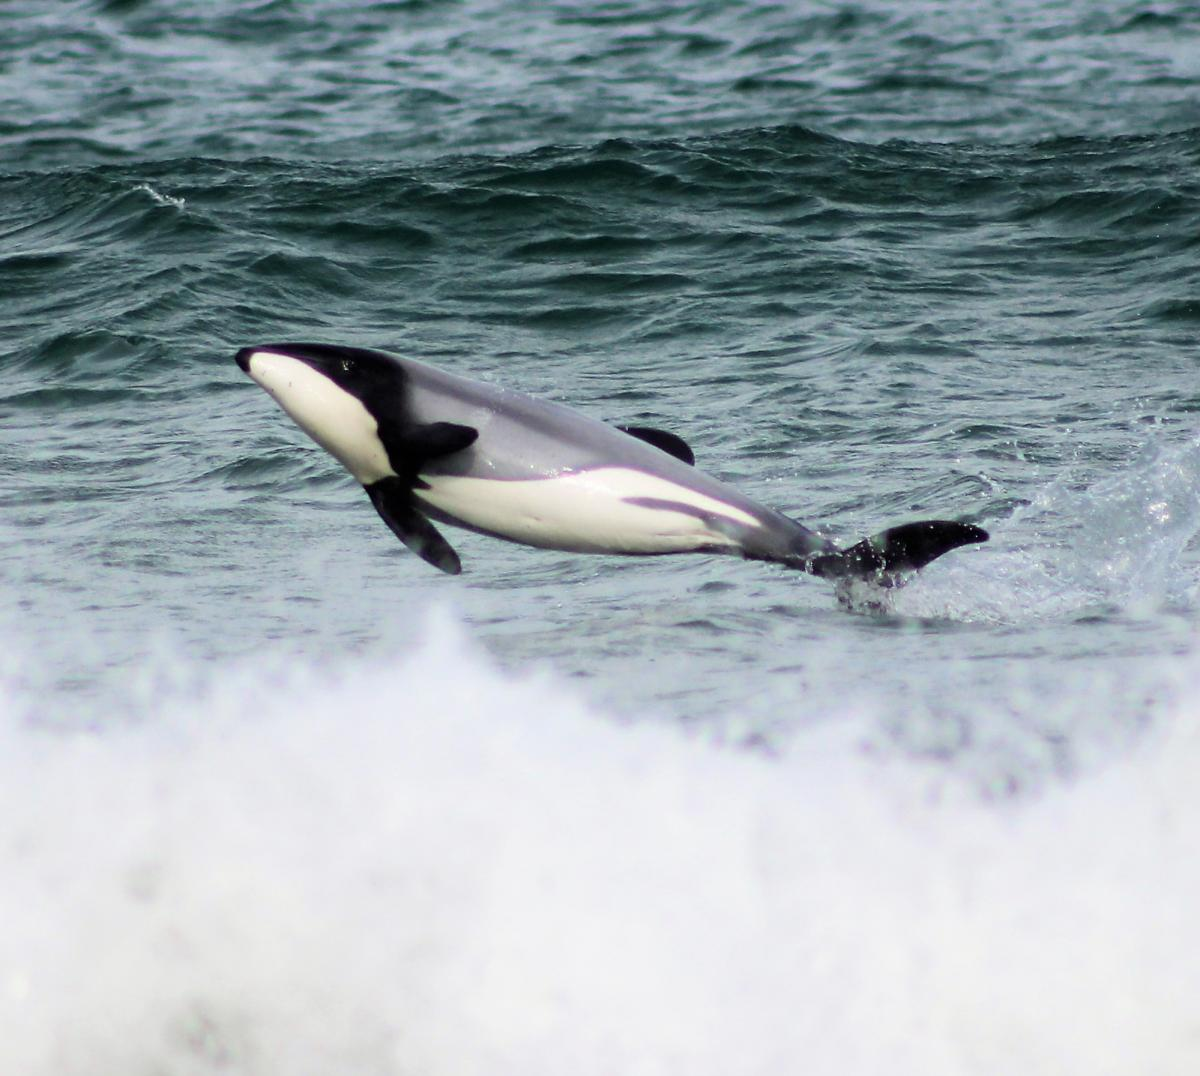 Dolphins out to play in Catlins